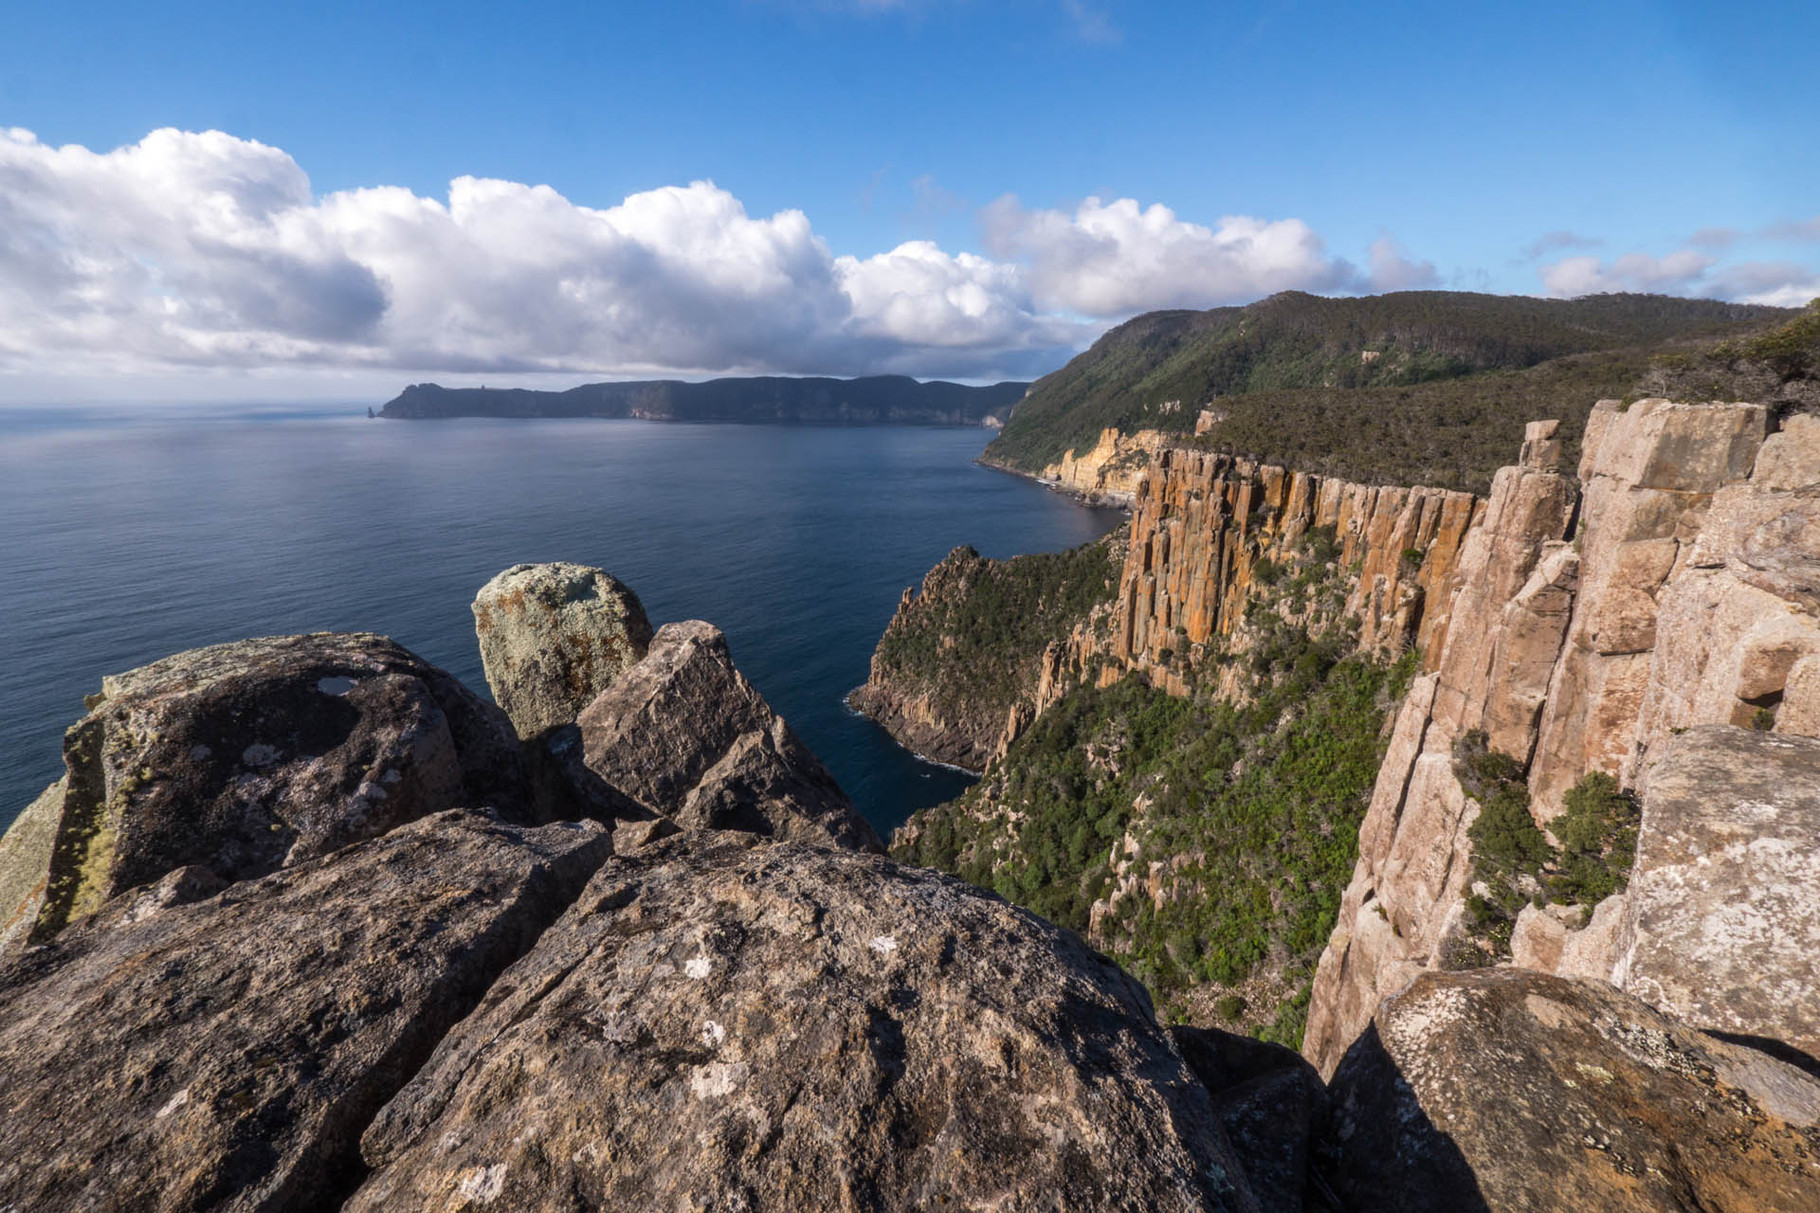 Tasman National Park, near Cape Hauy